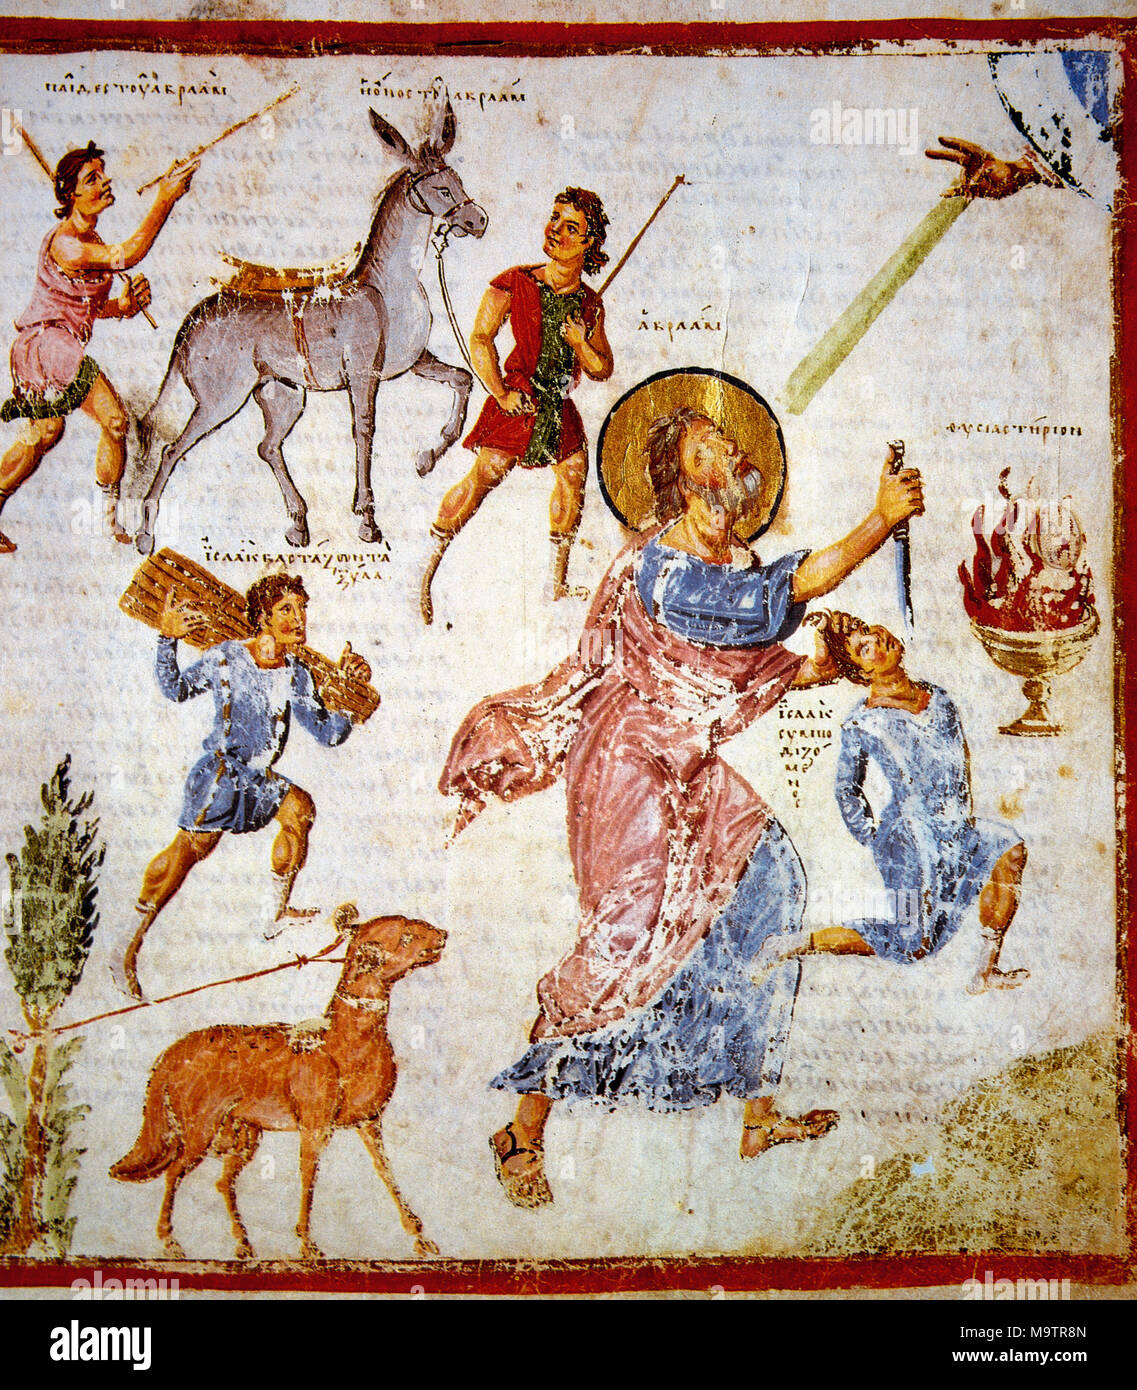 The Sacrifice of Isaac. Miniature of Christian Topography Constantinople by a Greek merchant named Cosmas Indicopleustes, 6th century. Folio. 59r. The Vatican Apostolic Library. Stock Photo